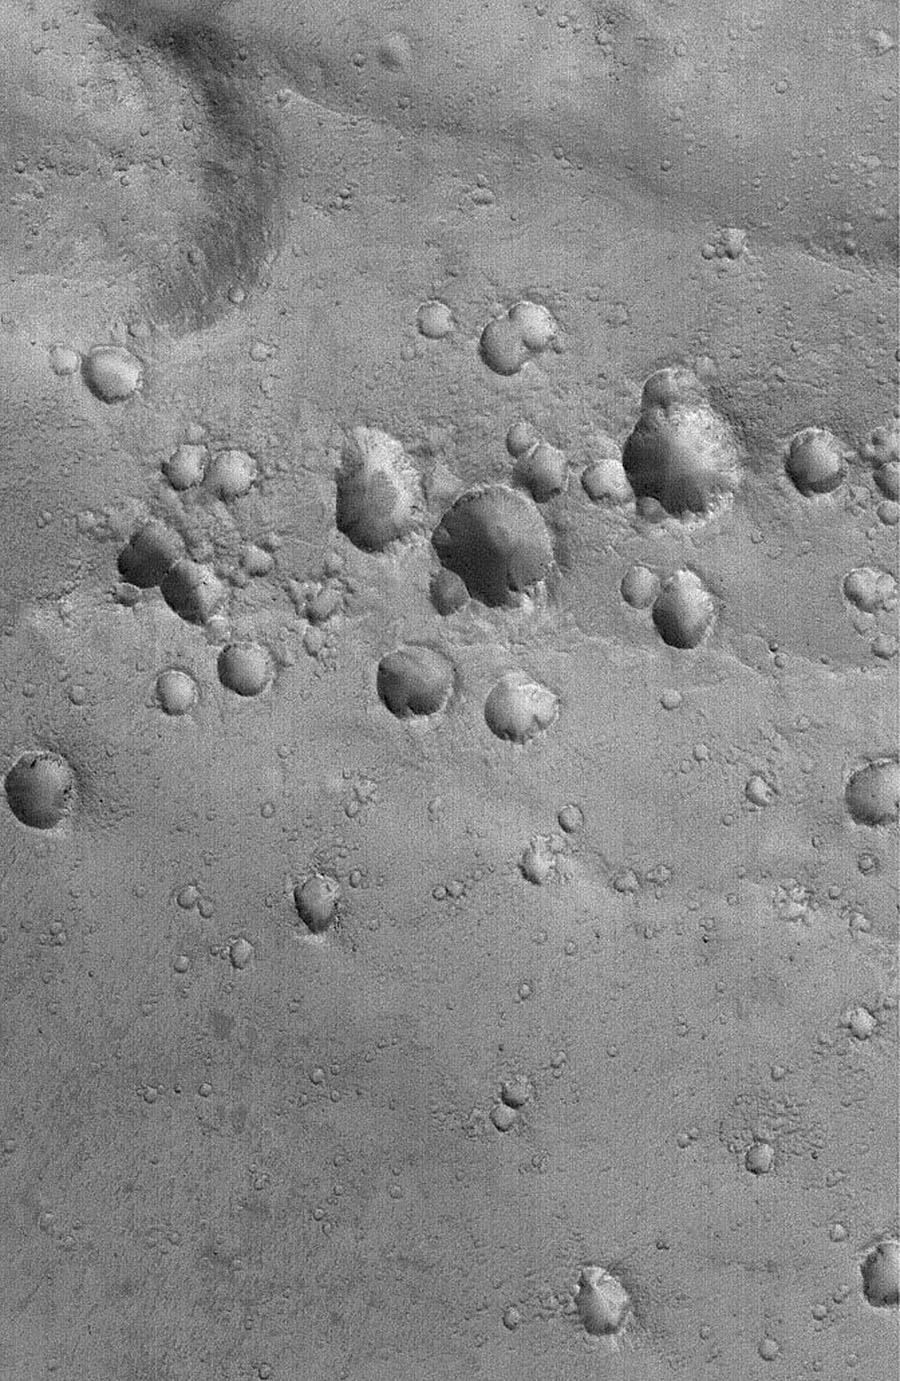 NASA's Mars Global Surveyor shows a cluster of craters in far western Arabia Terra on Mars. The crater cluster is oriented along a line that runs nearly left-right across the scene.